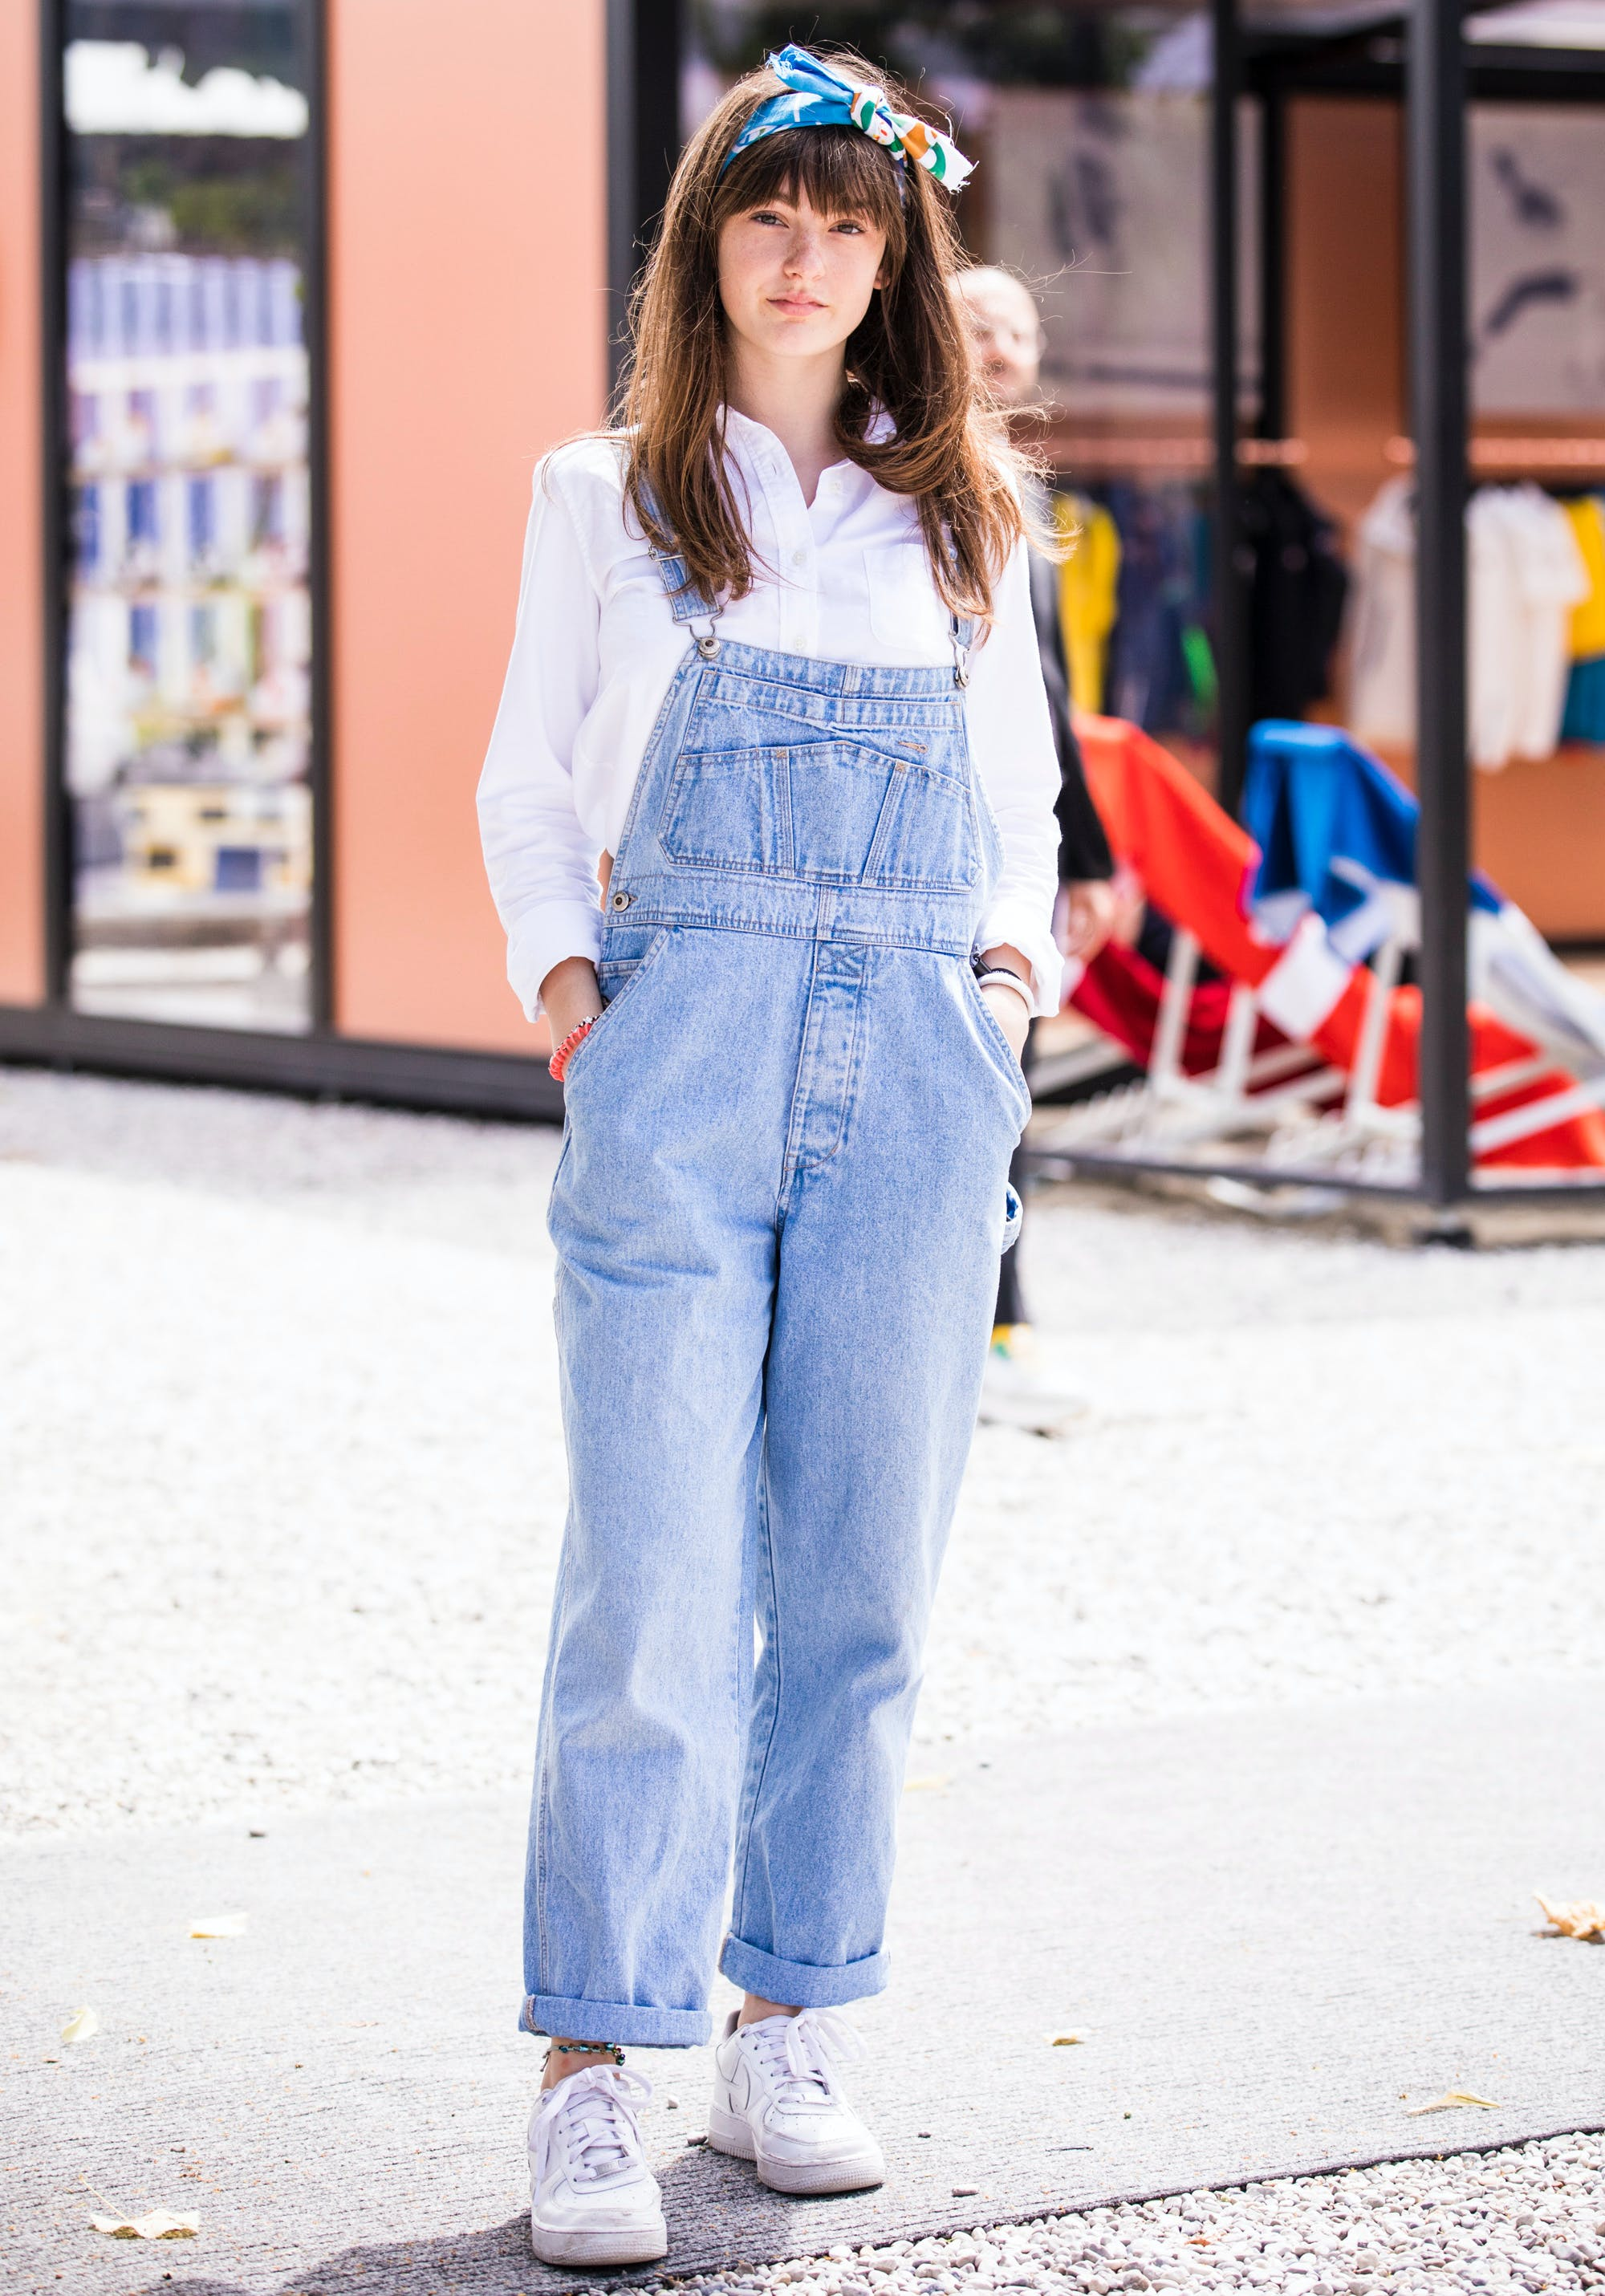 a woman wearing denim overalls